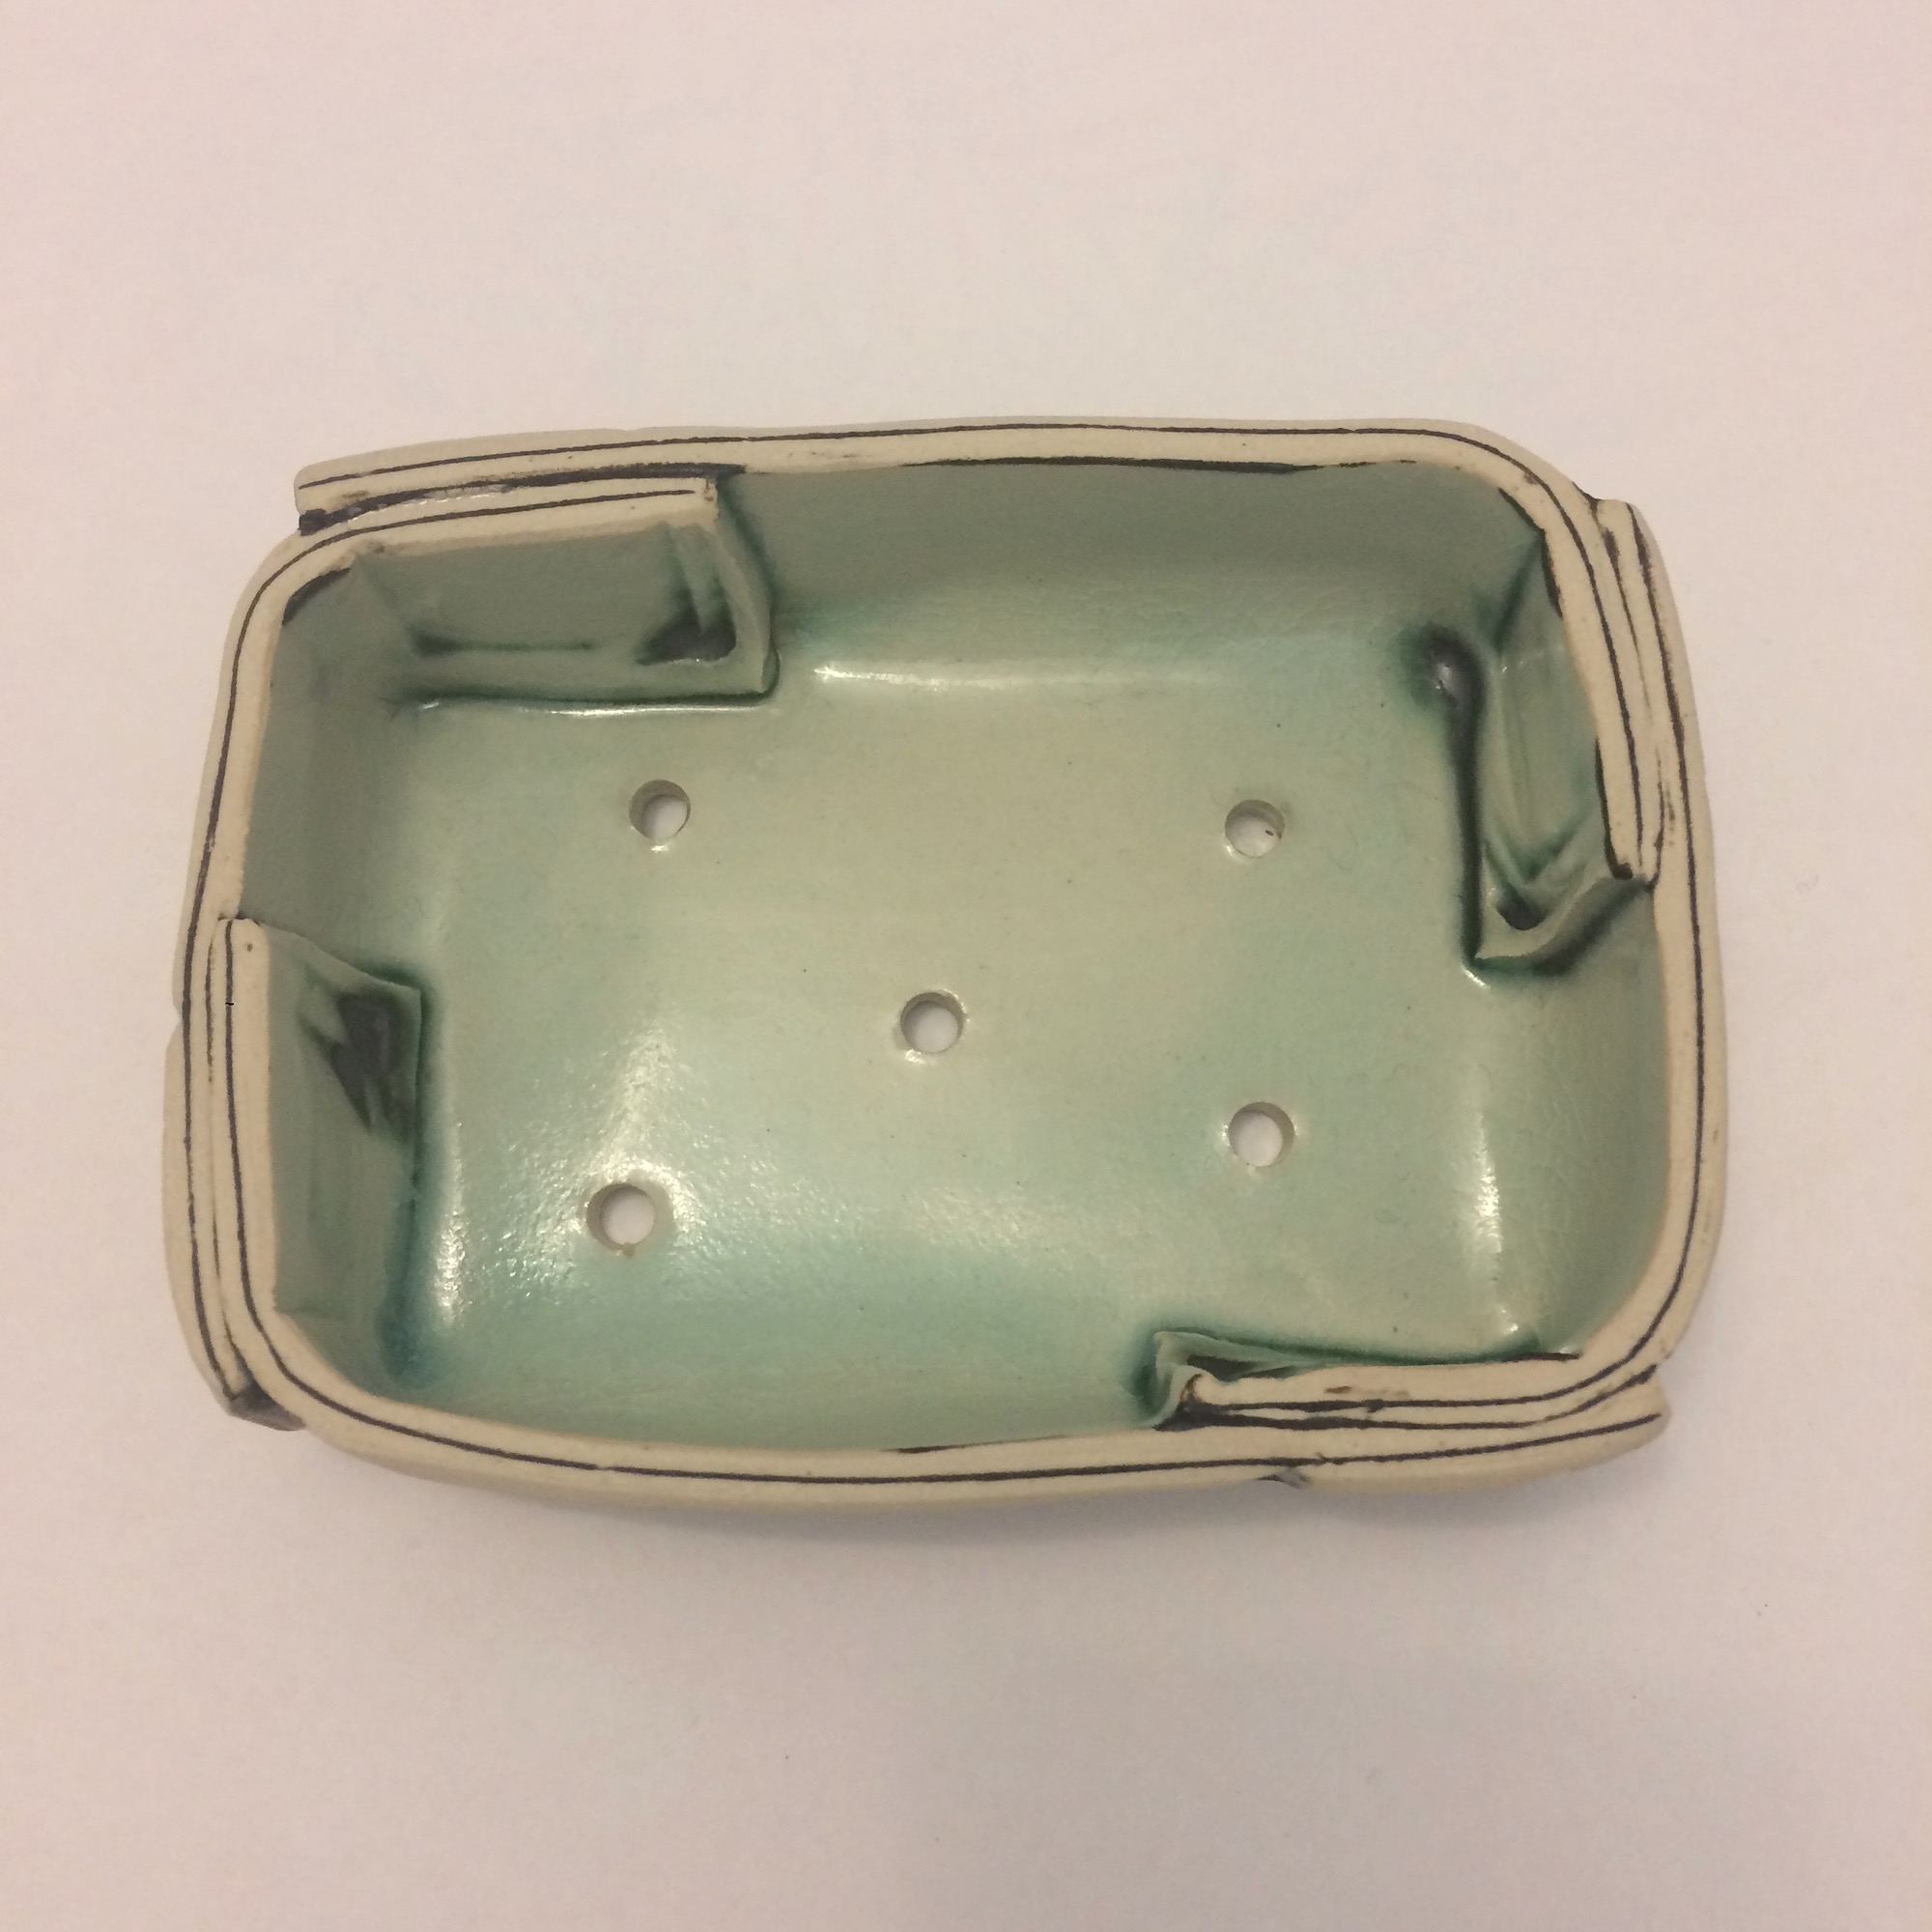 Handmade Pearl Blue Stoneware Soap Dish by Fiona Veacock